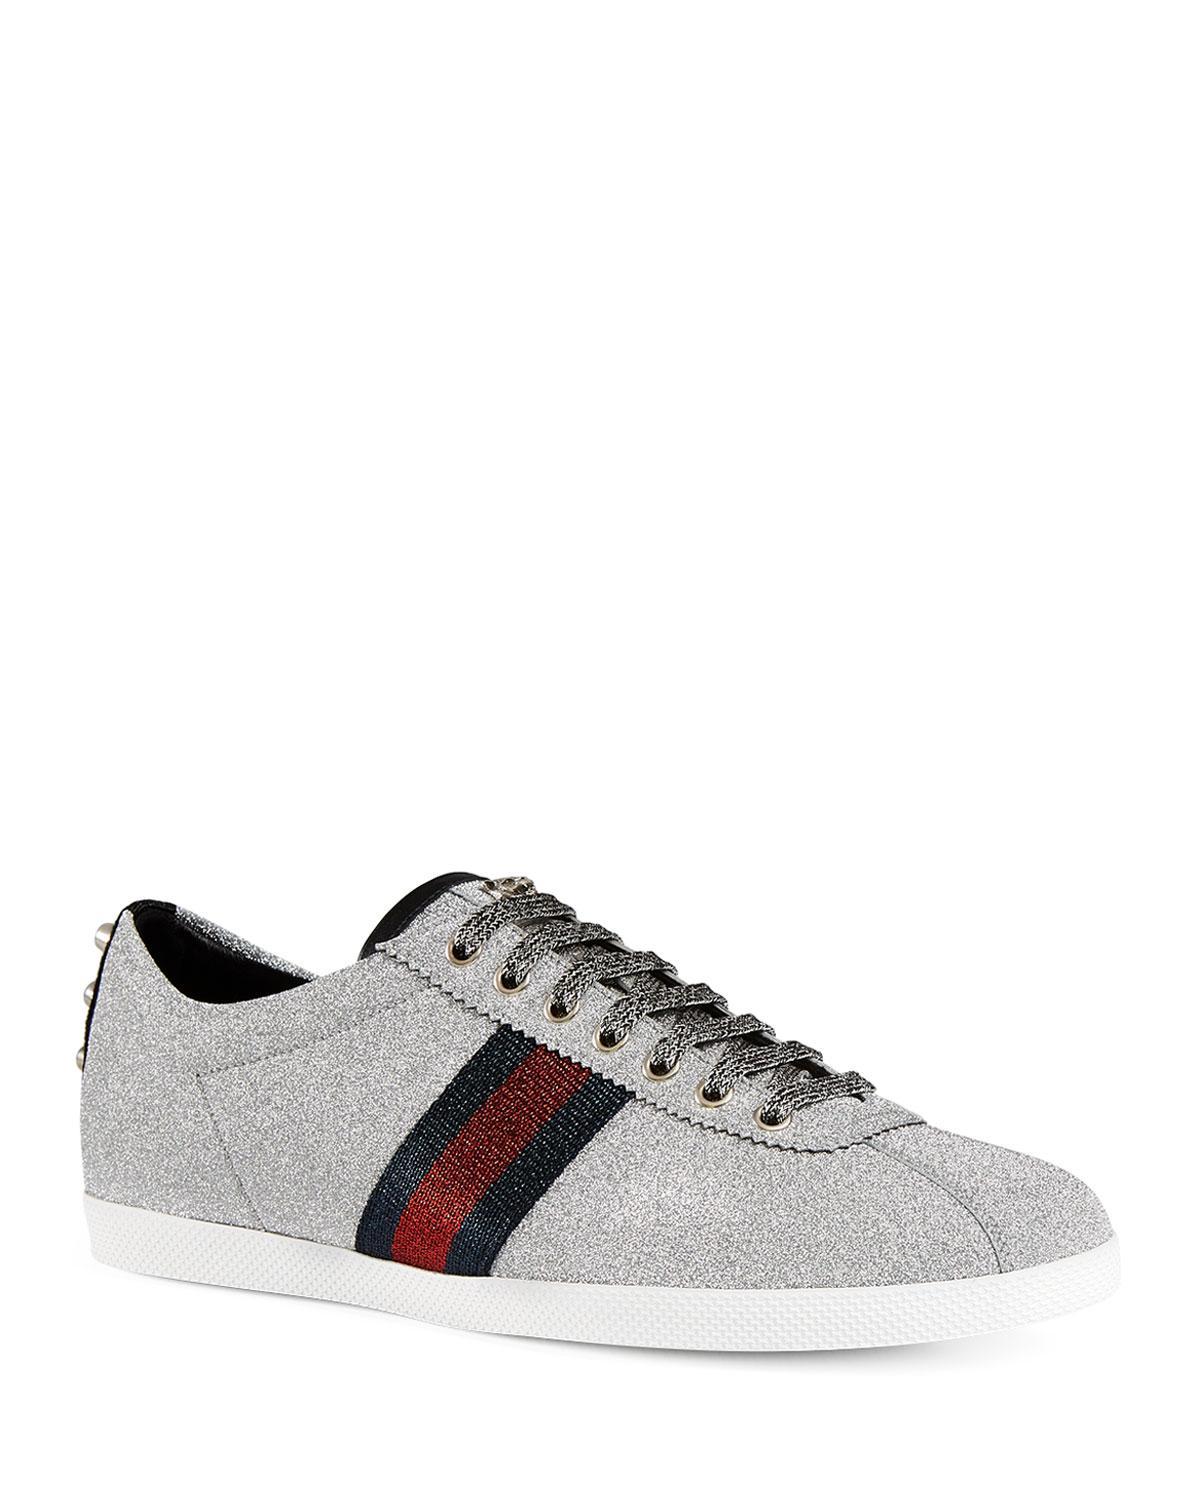 670d5759f08 Lyst - Gucci Men s Bambi Web Low-top Sneakers With Stud Detail for Men